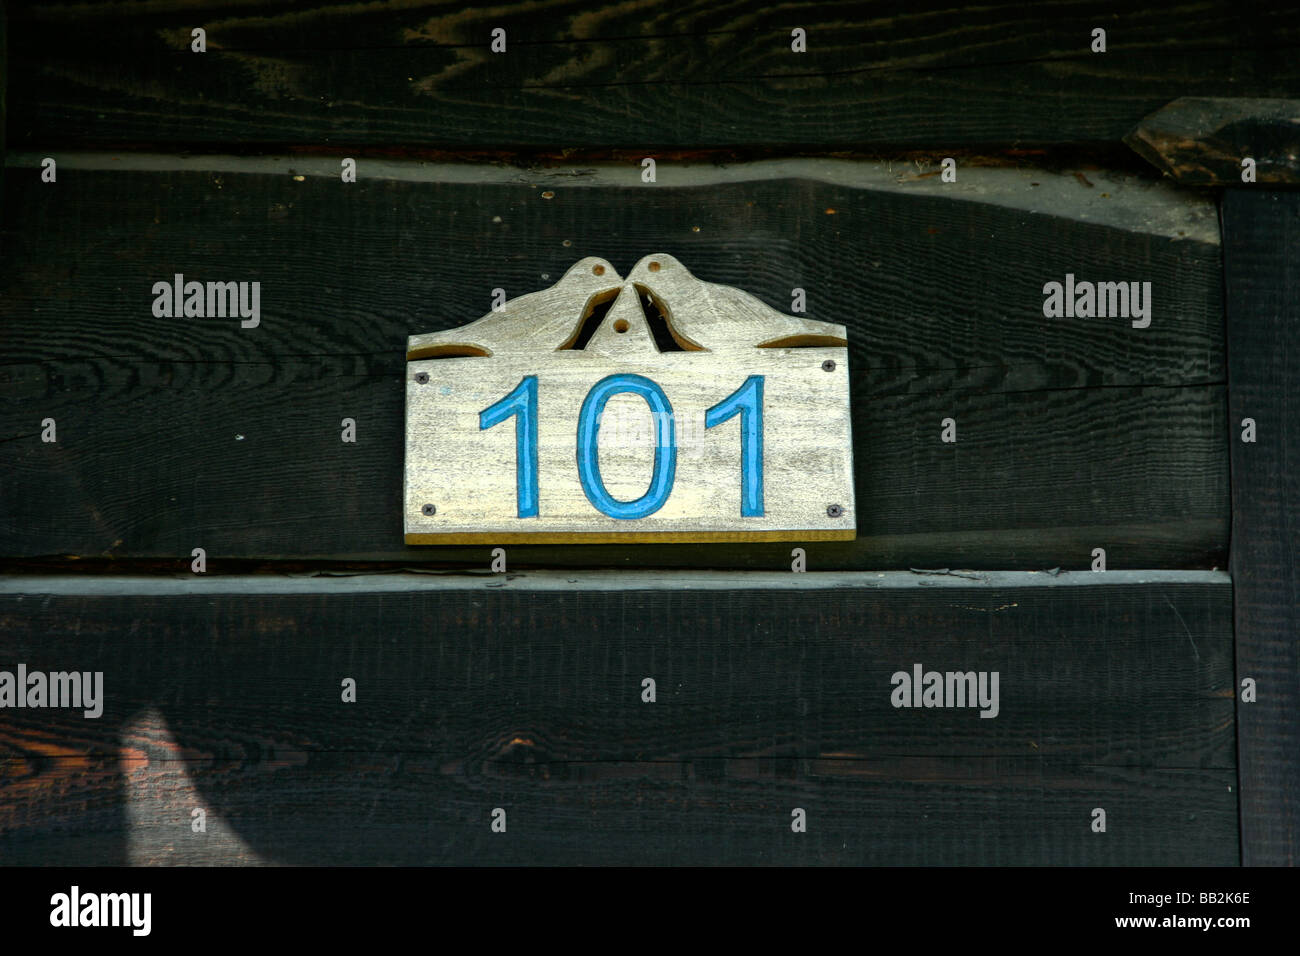 101 house number in Soce village, Poland - Stock Image